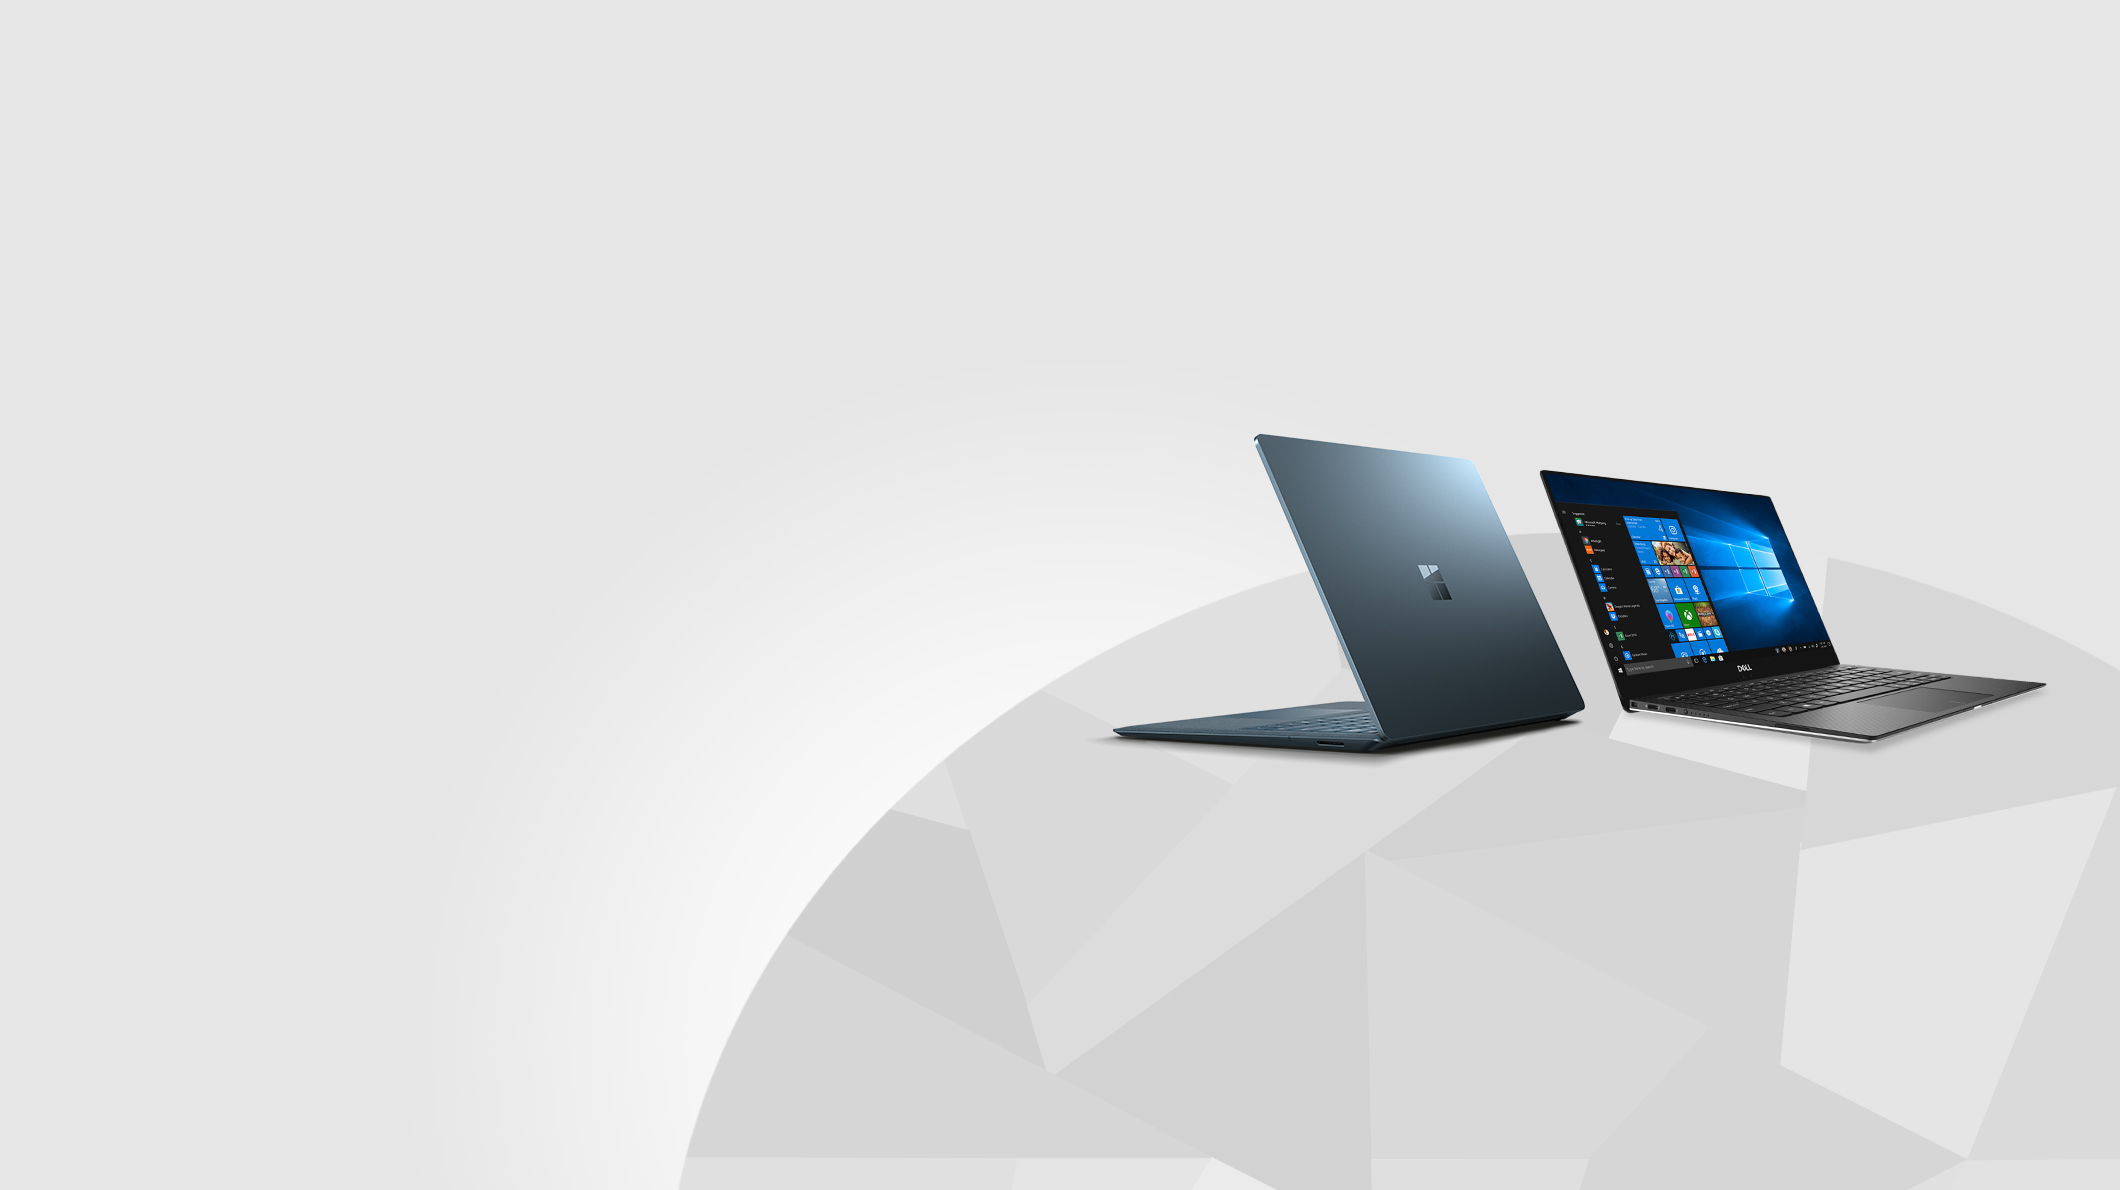 A Cobalt Surface Laptop 2 and a Dell XPS 13 sit on an illustration of the Earth